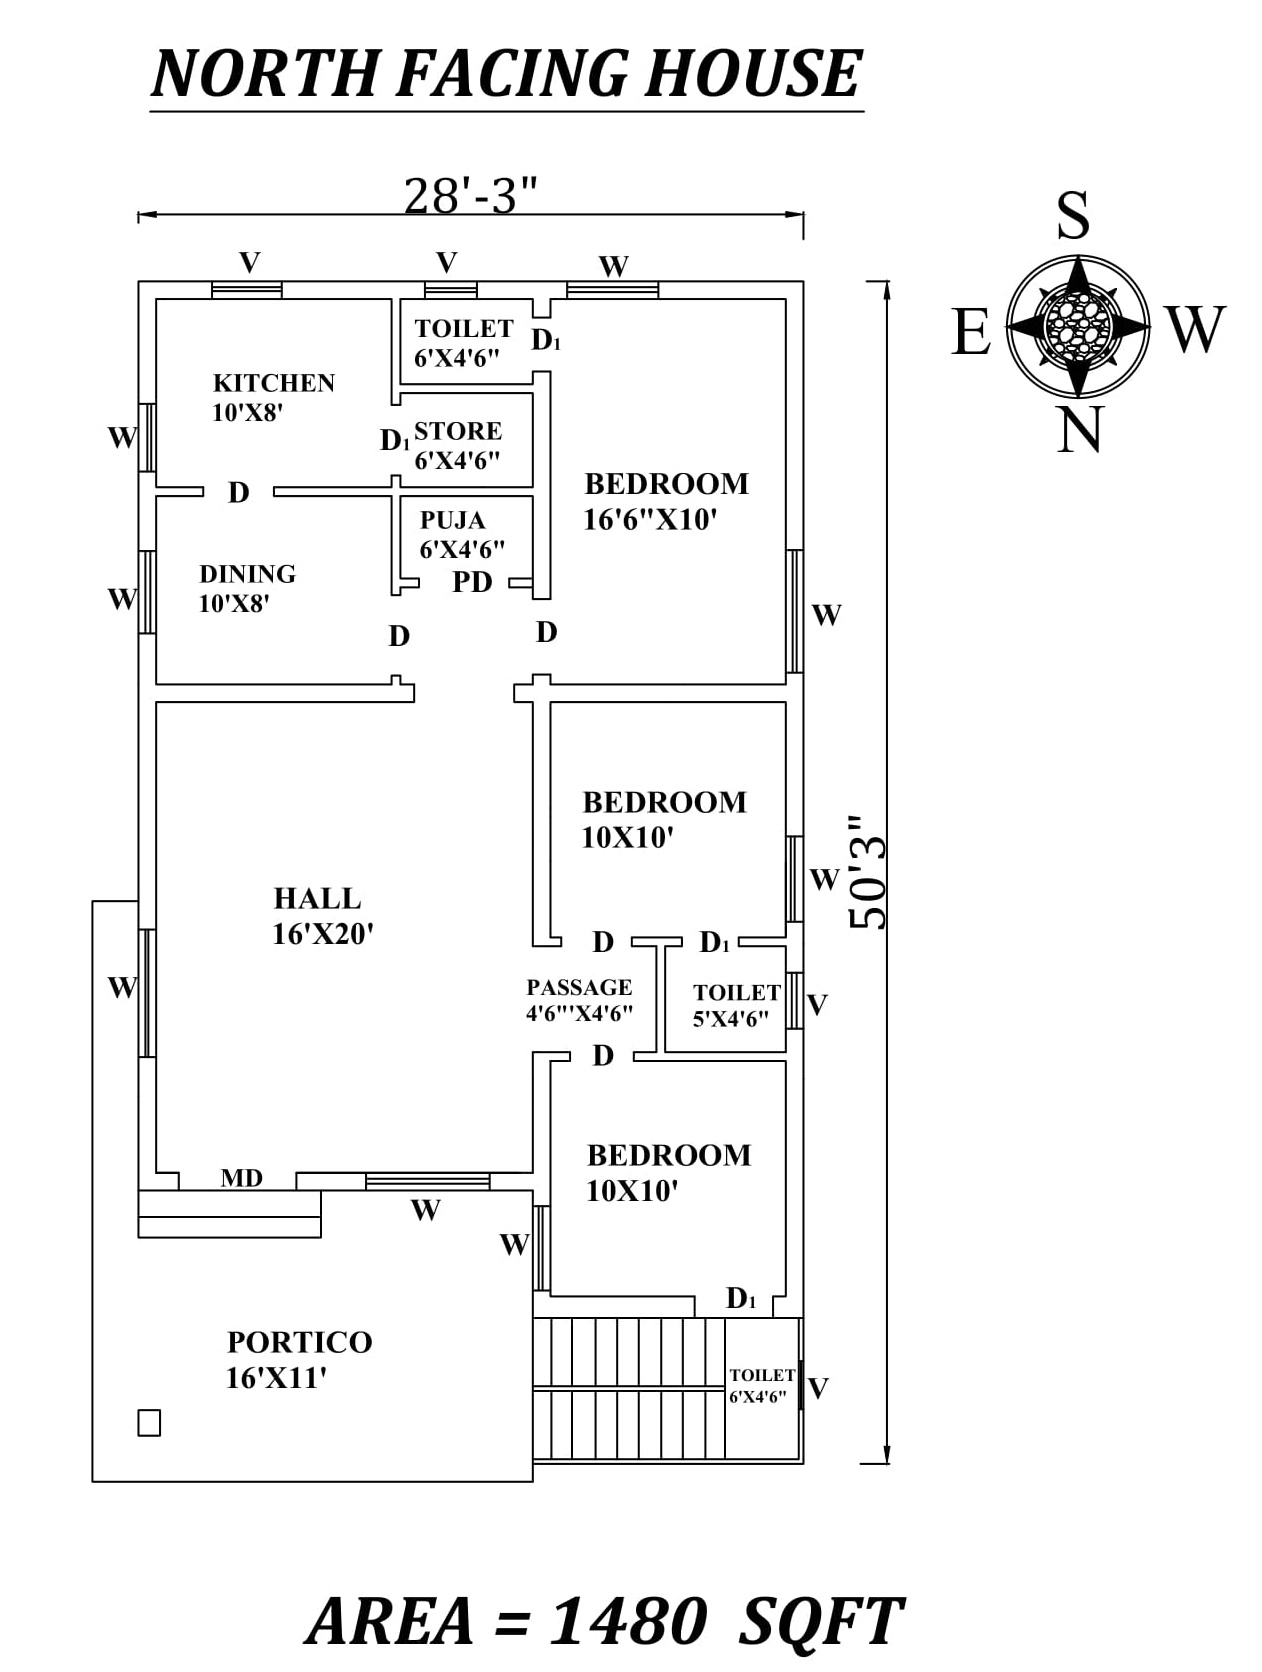 28 x50 marvelous 3bhk north facing house plan as per